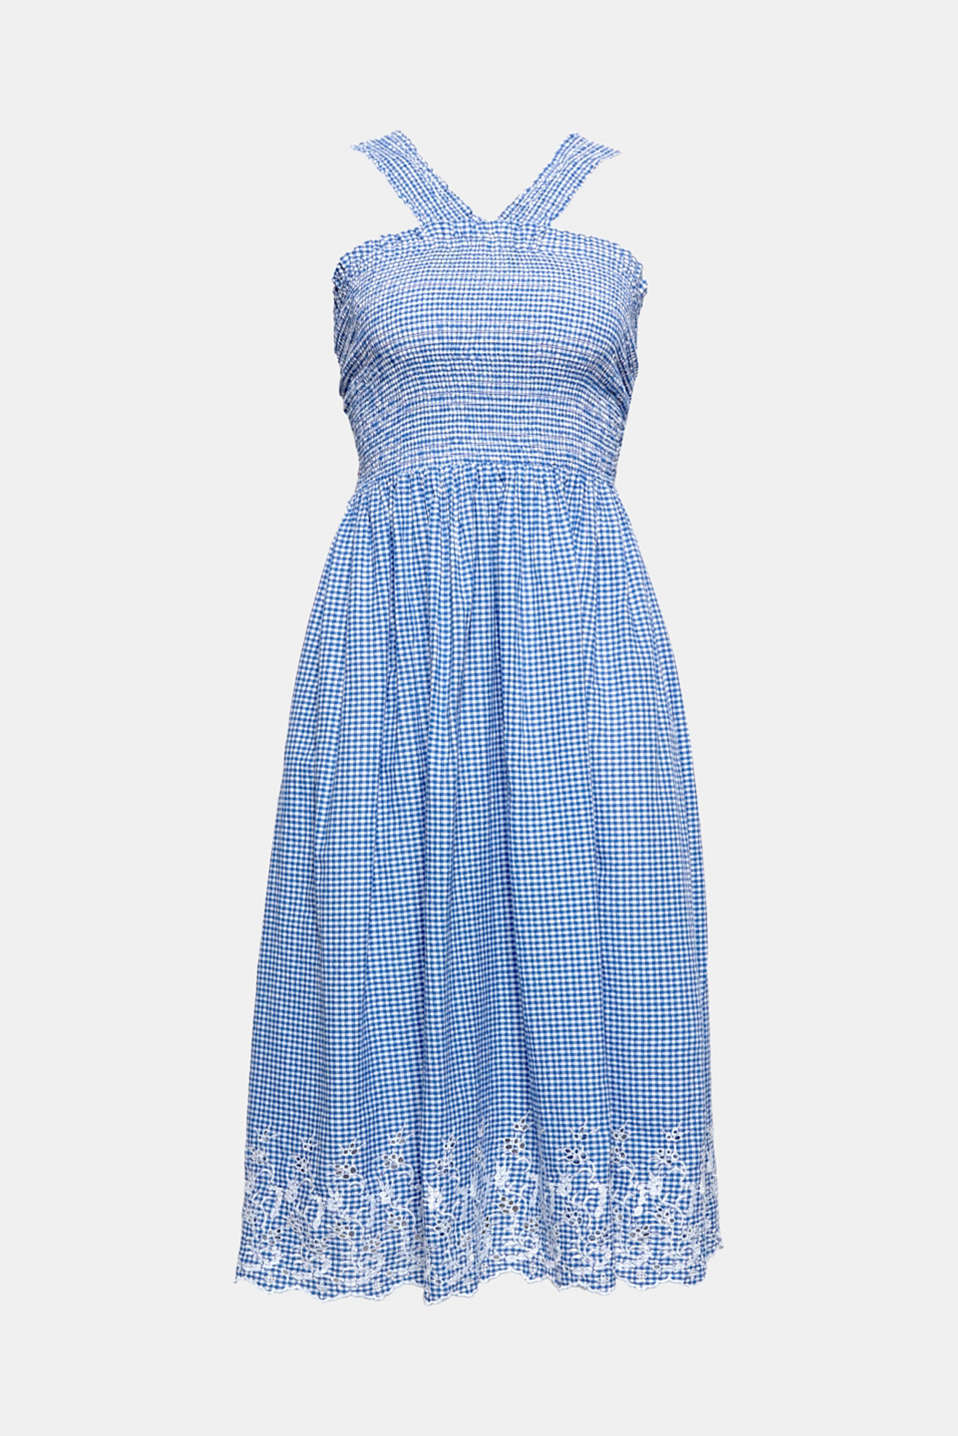 With soft fabric composed of organic cotton, trendy gingham design and an airy silhouette, this dress combines all features that a perfect summer companion should have.